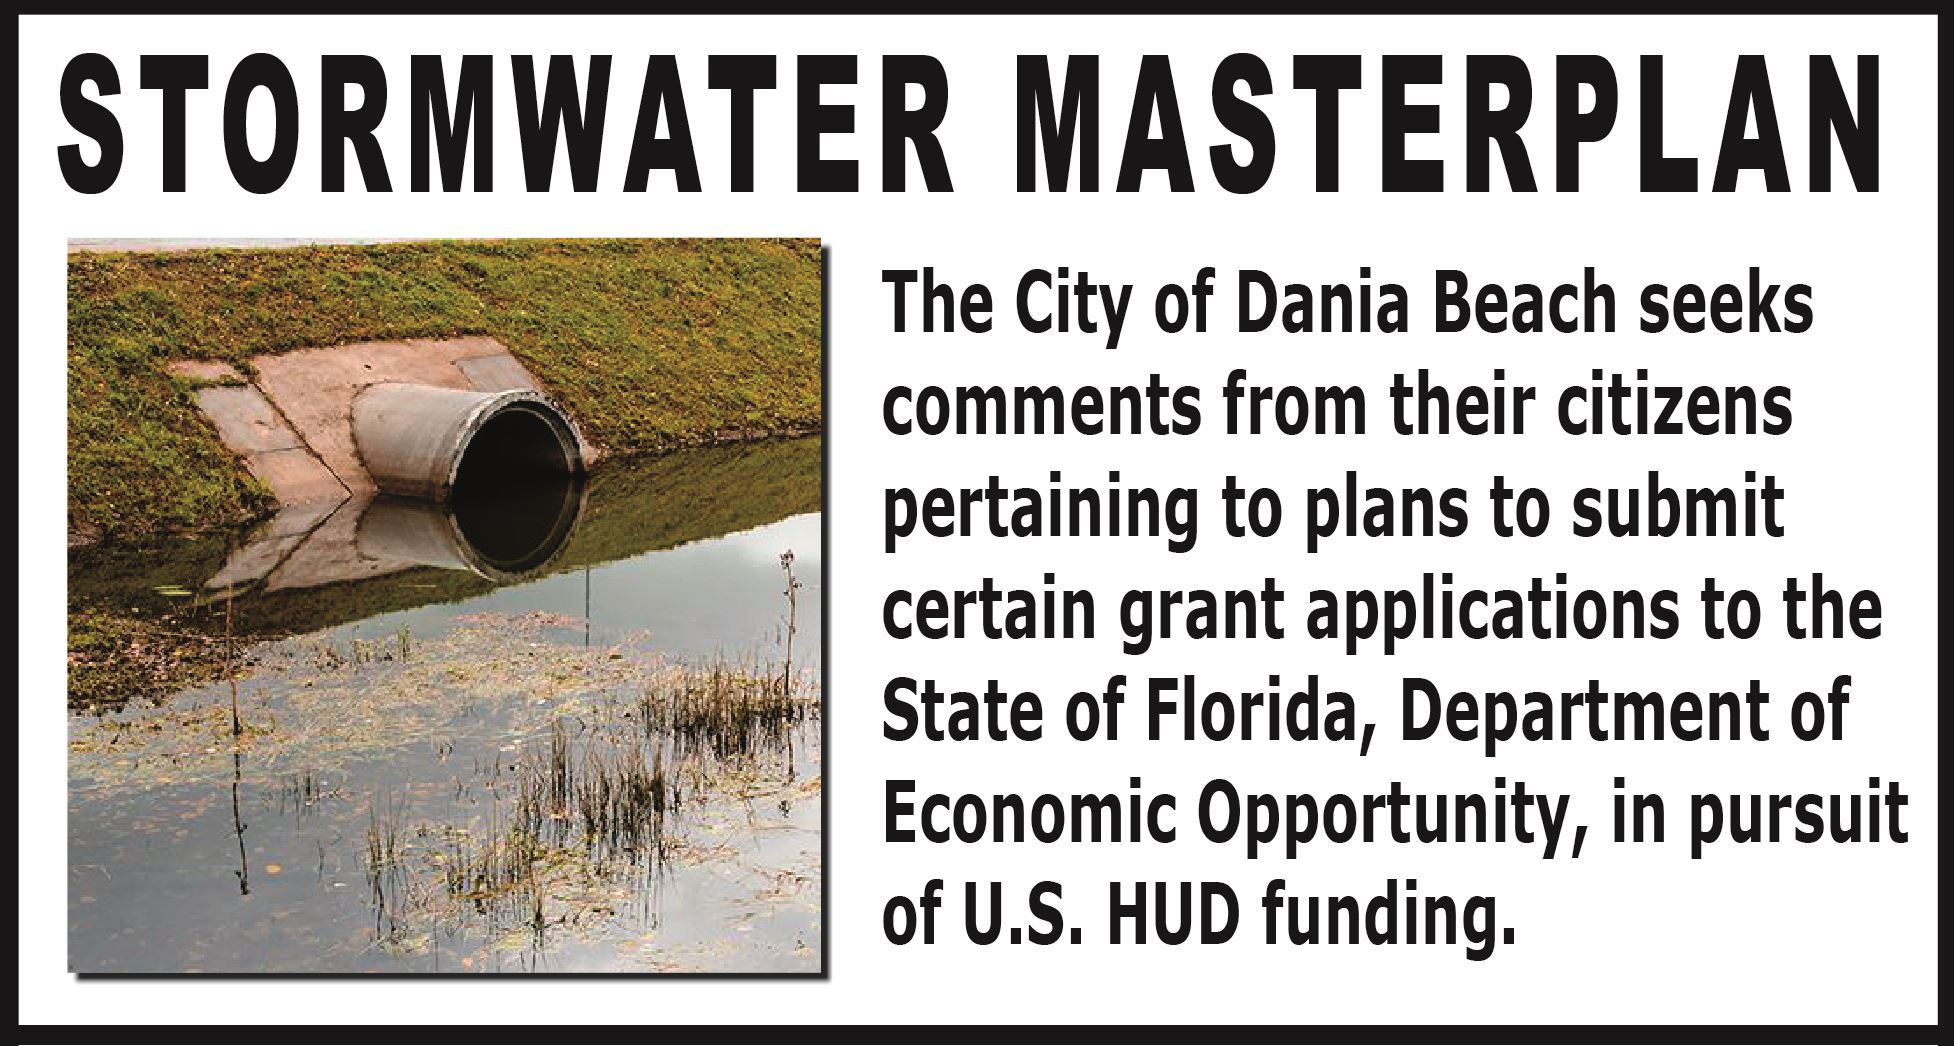 Stormwater Masterplan -   Dania Beach seeks comments from their citizens pertaining to plans to subm